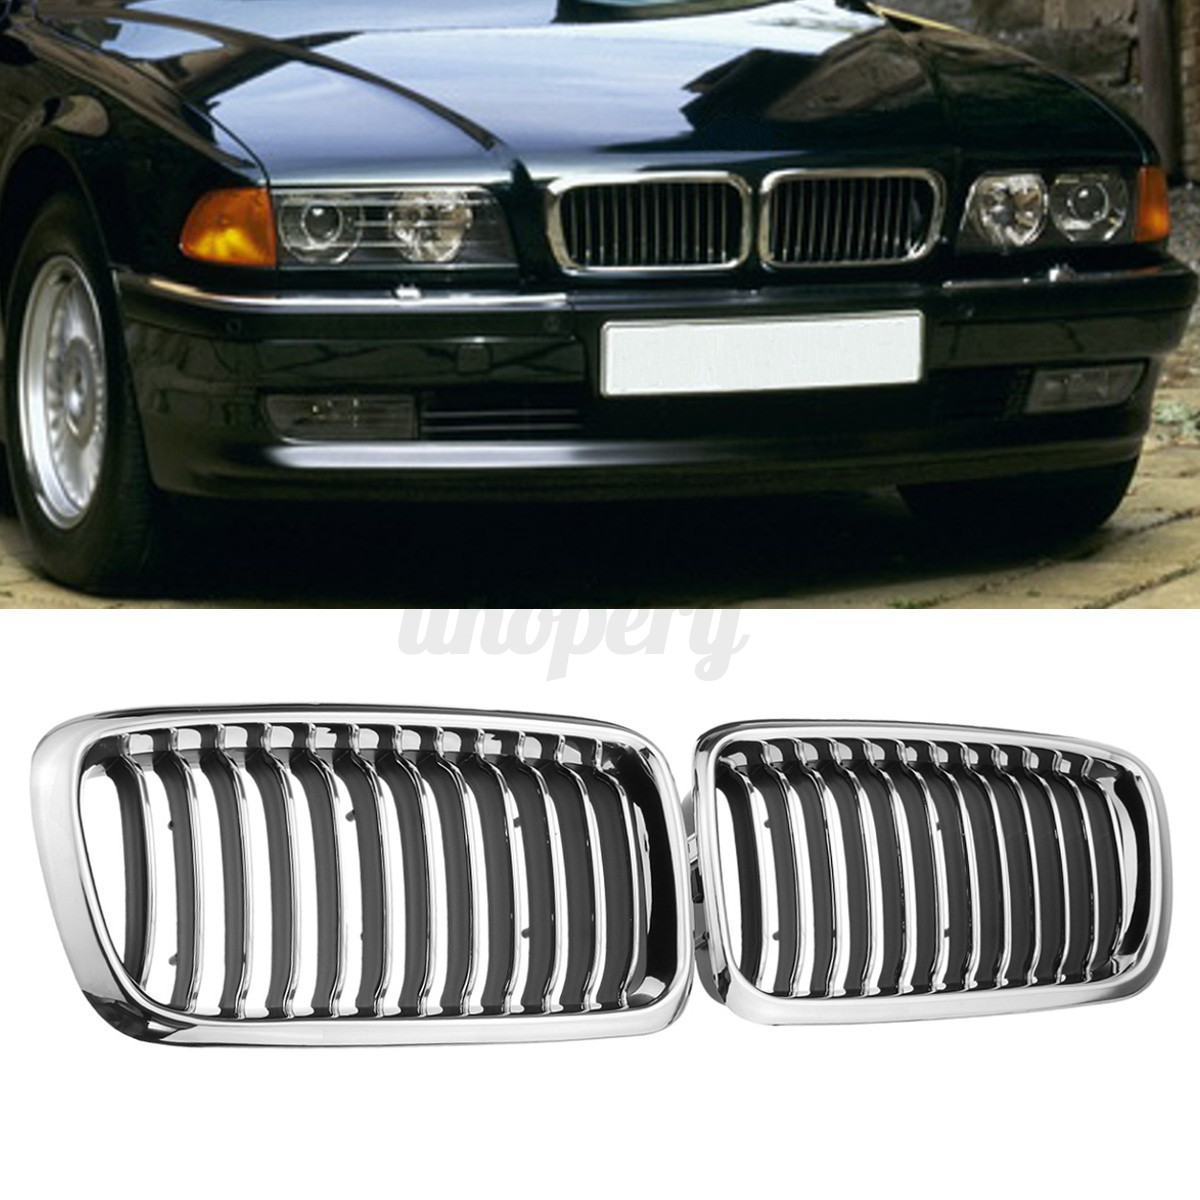 Bmw Grills: Pair Chrome Black Front Bumper Grille Grill For BMW E38